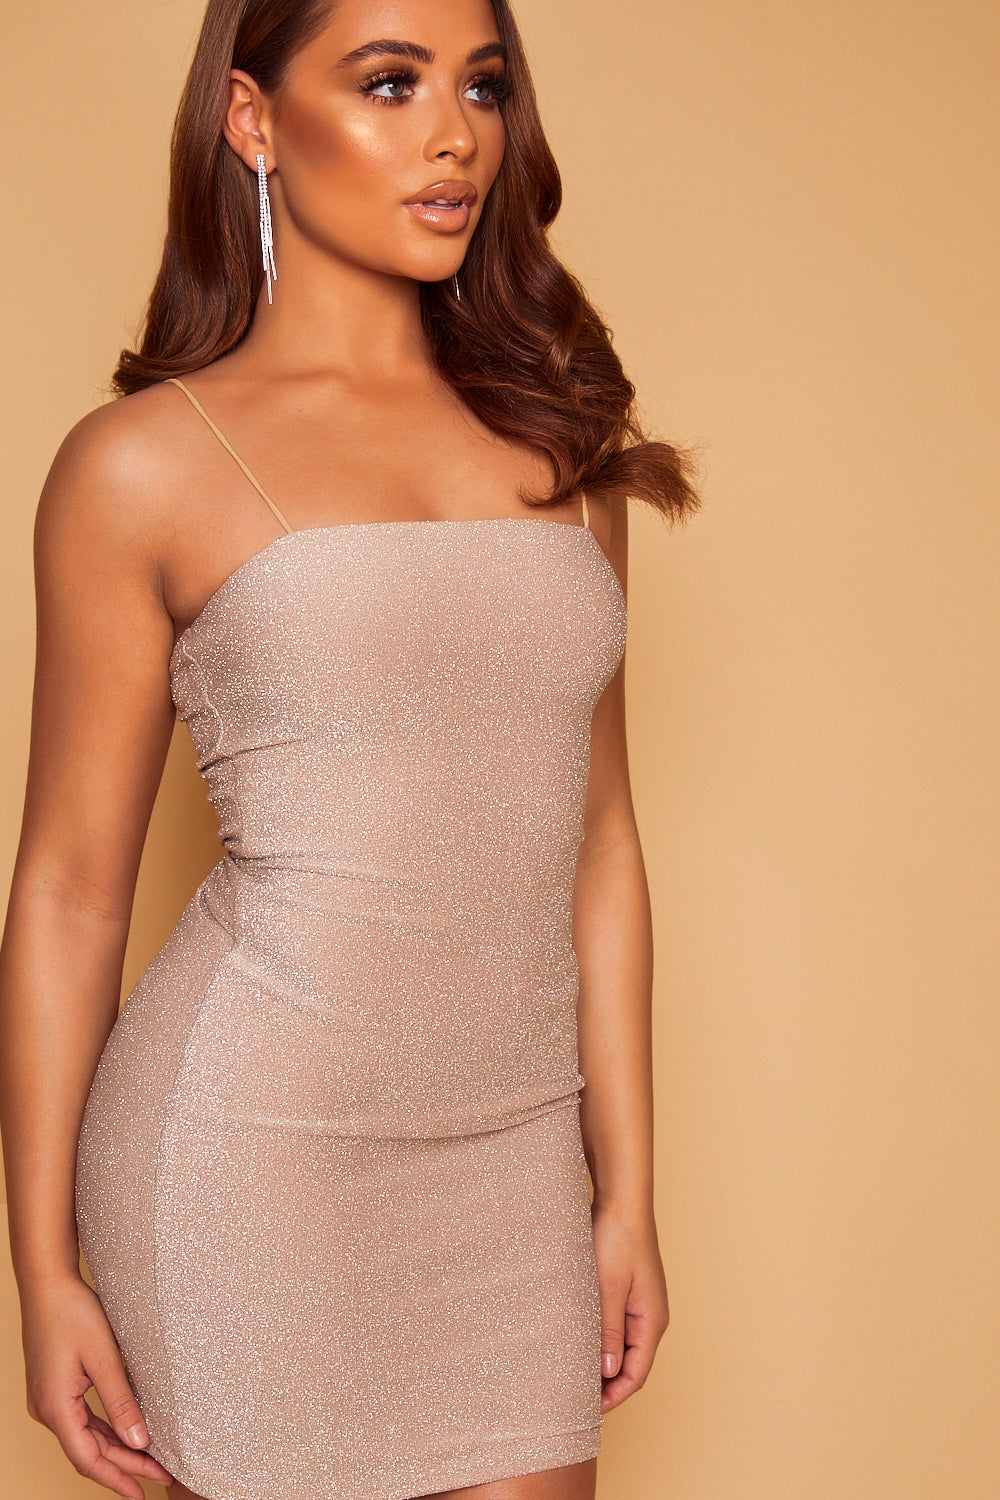 Cayenne Shimmer Dress - Champagne